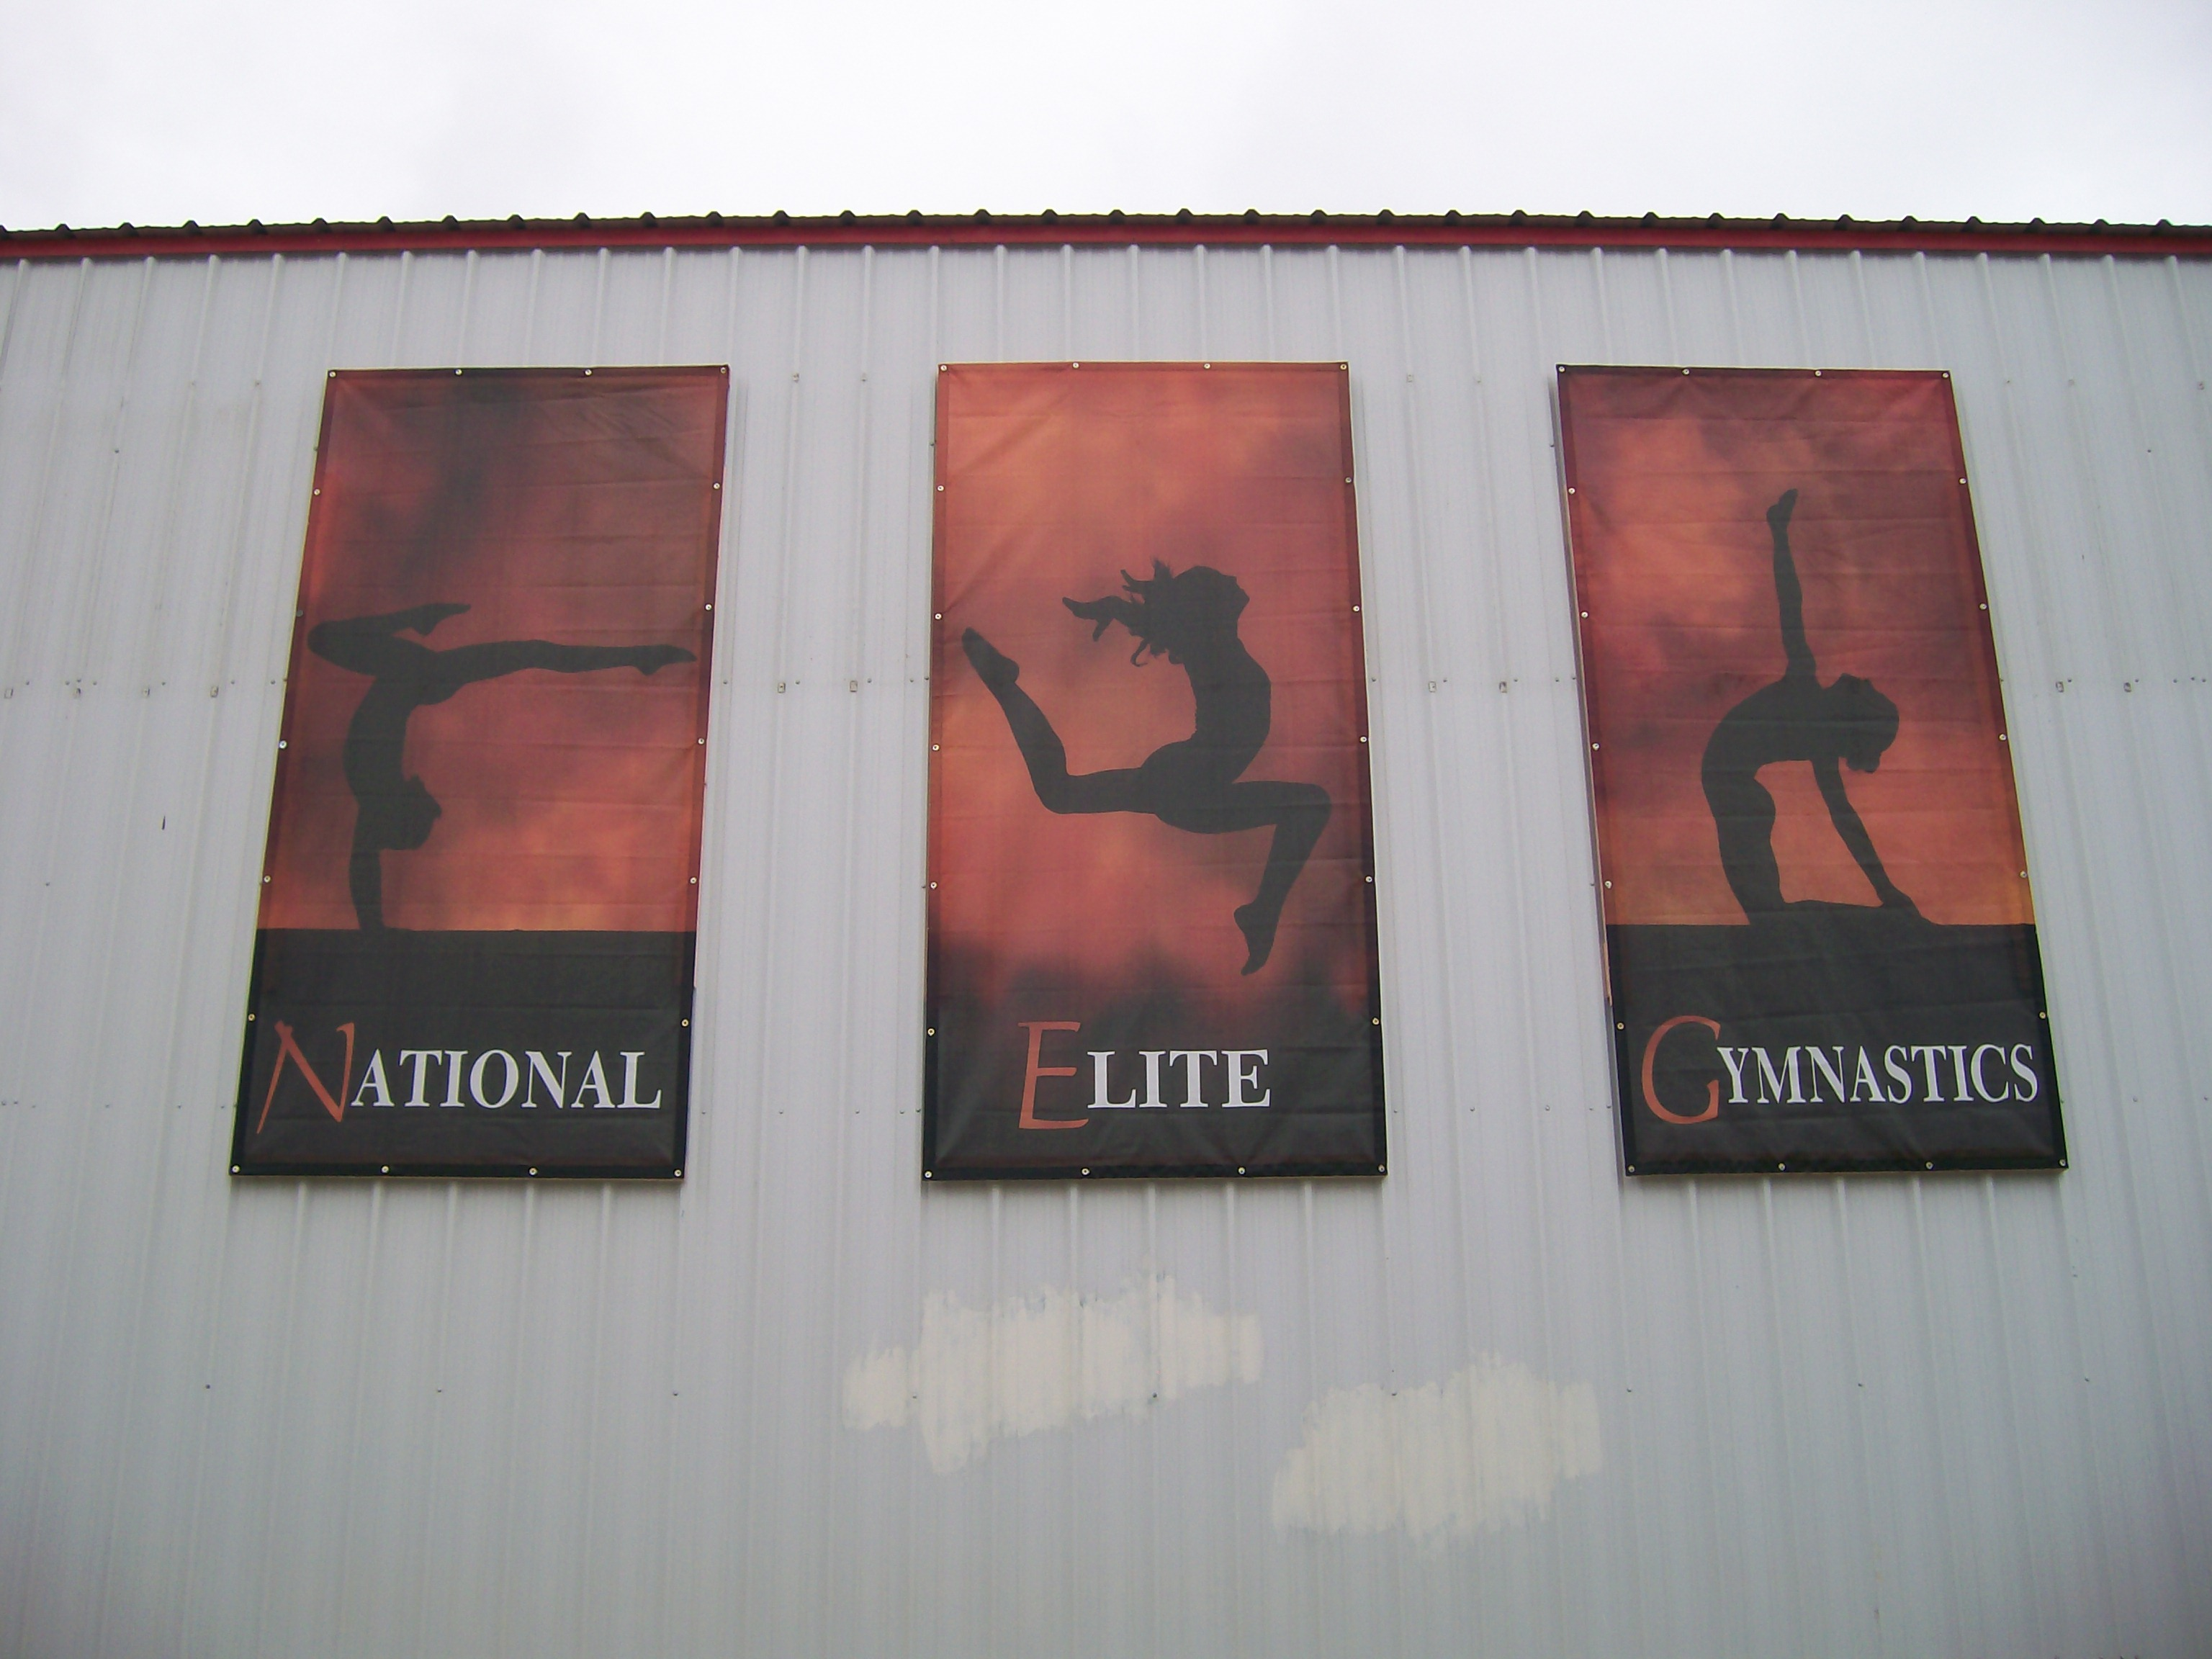 Building Banner Displays